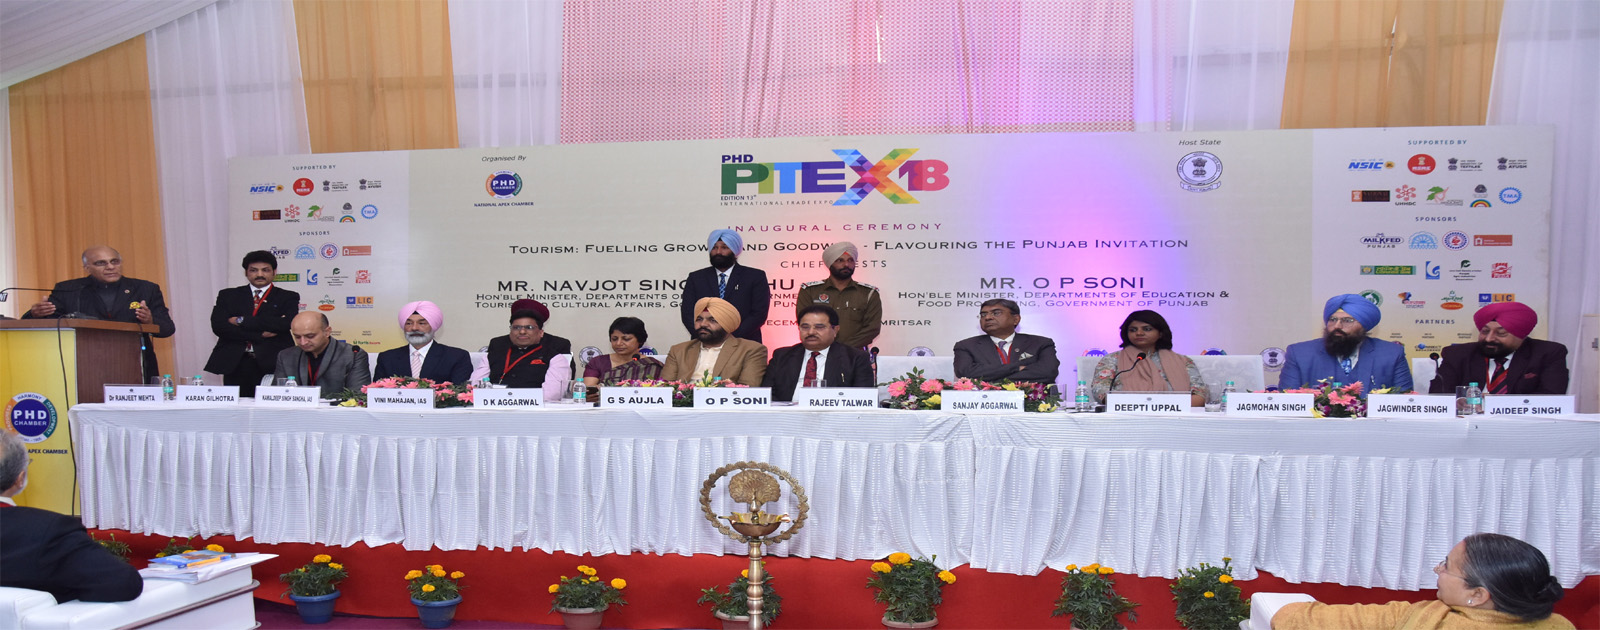 Inaugural ceremony of PITEX 2018